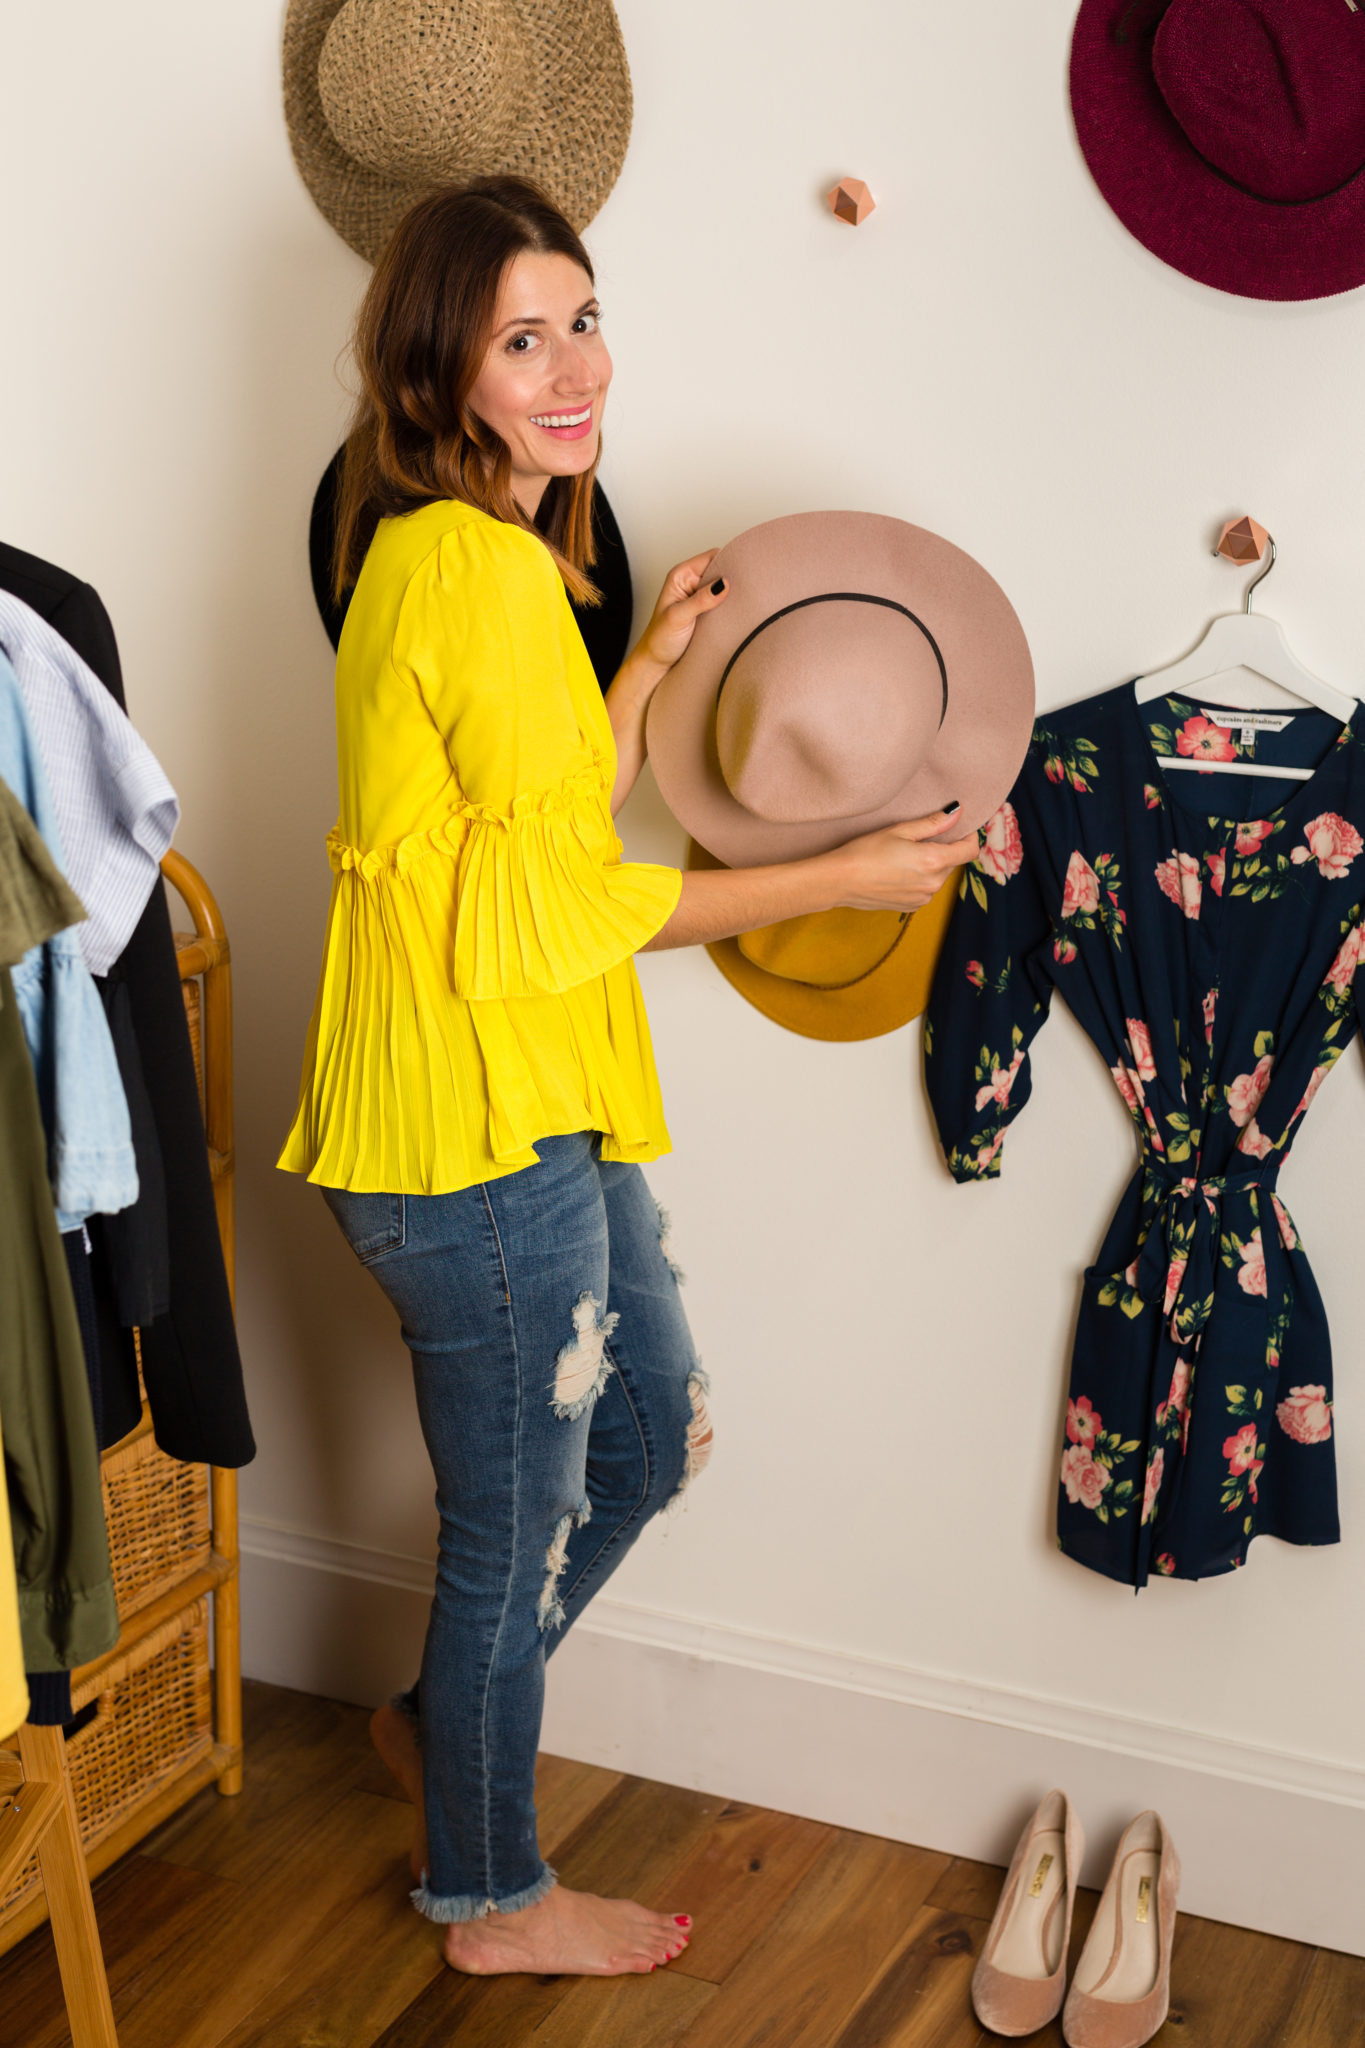 How to organize your clothes | how to hang your hats | hat hooks | hat wall | Dove Invisible Dry Spray Deodorant | how I get out to door quickly on allweareblog.com